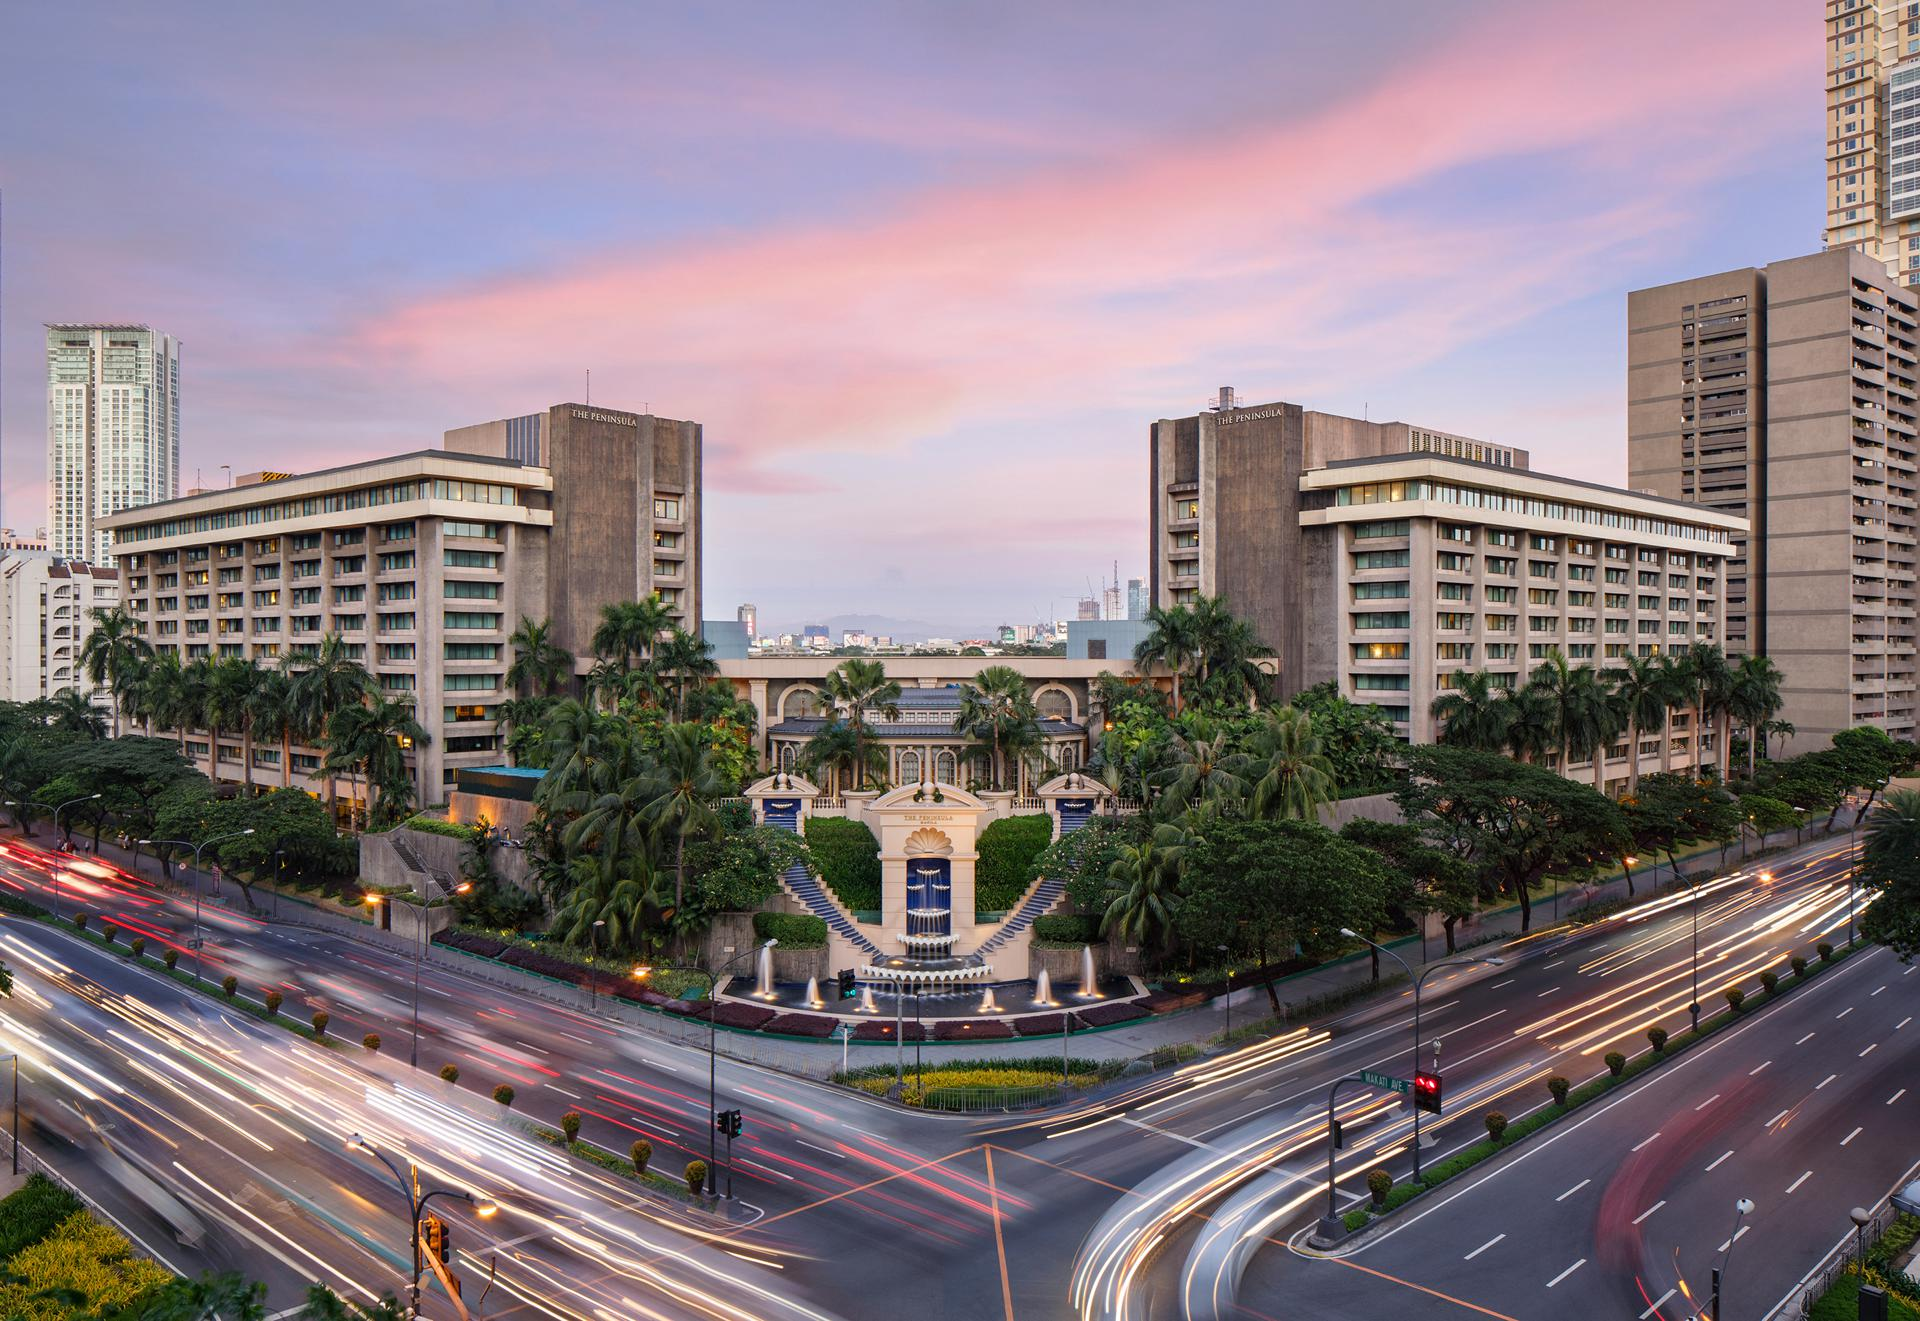 Located in the heart of the Philippine capital, The Peninsula Manila features 8 different room types, including a 3,000-square-foot suite with a full living room, a grand piano, a crystal chandelier, and silk upholstered furniture.